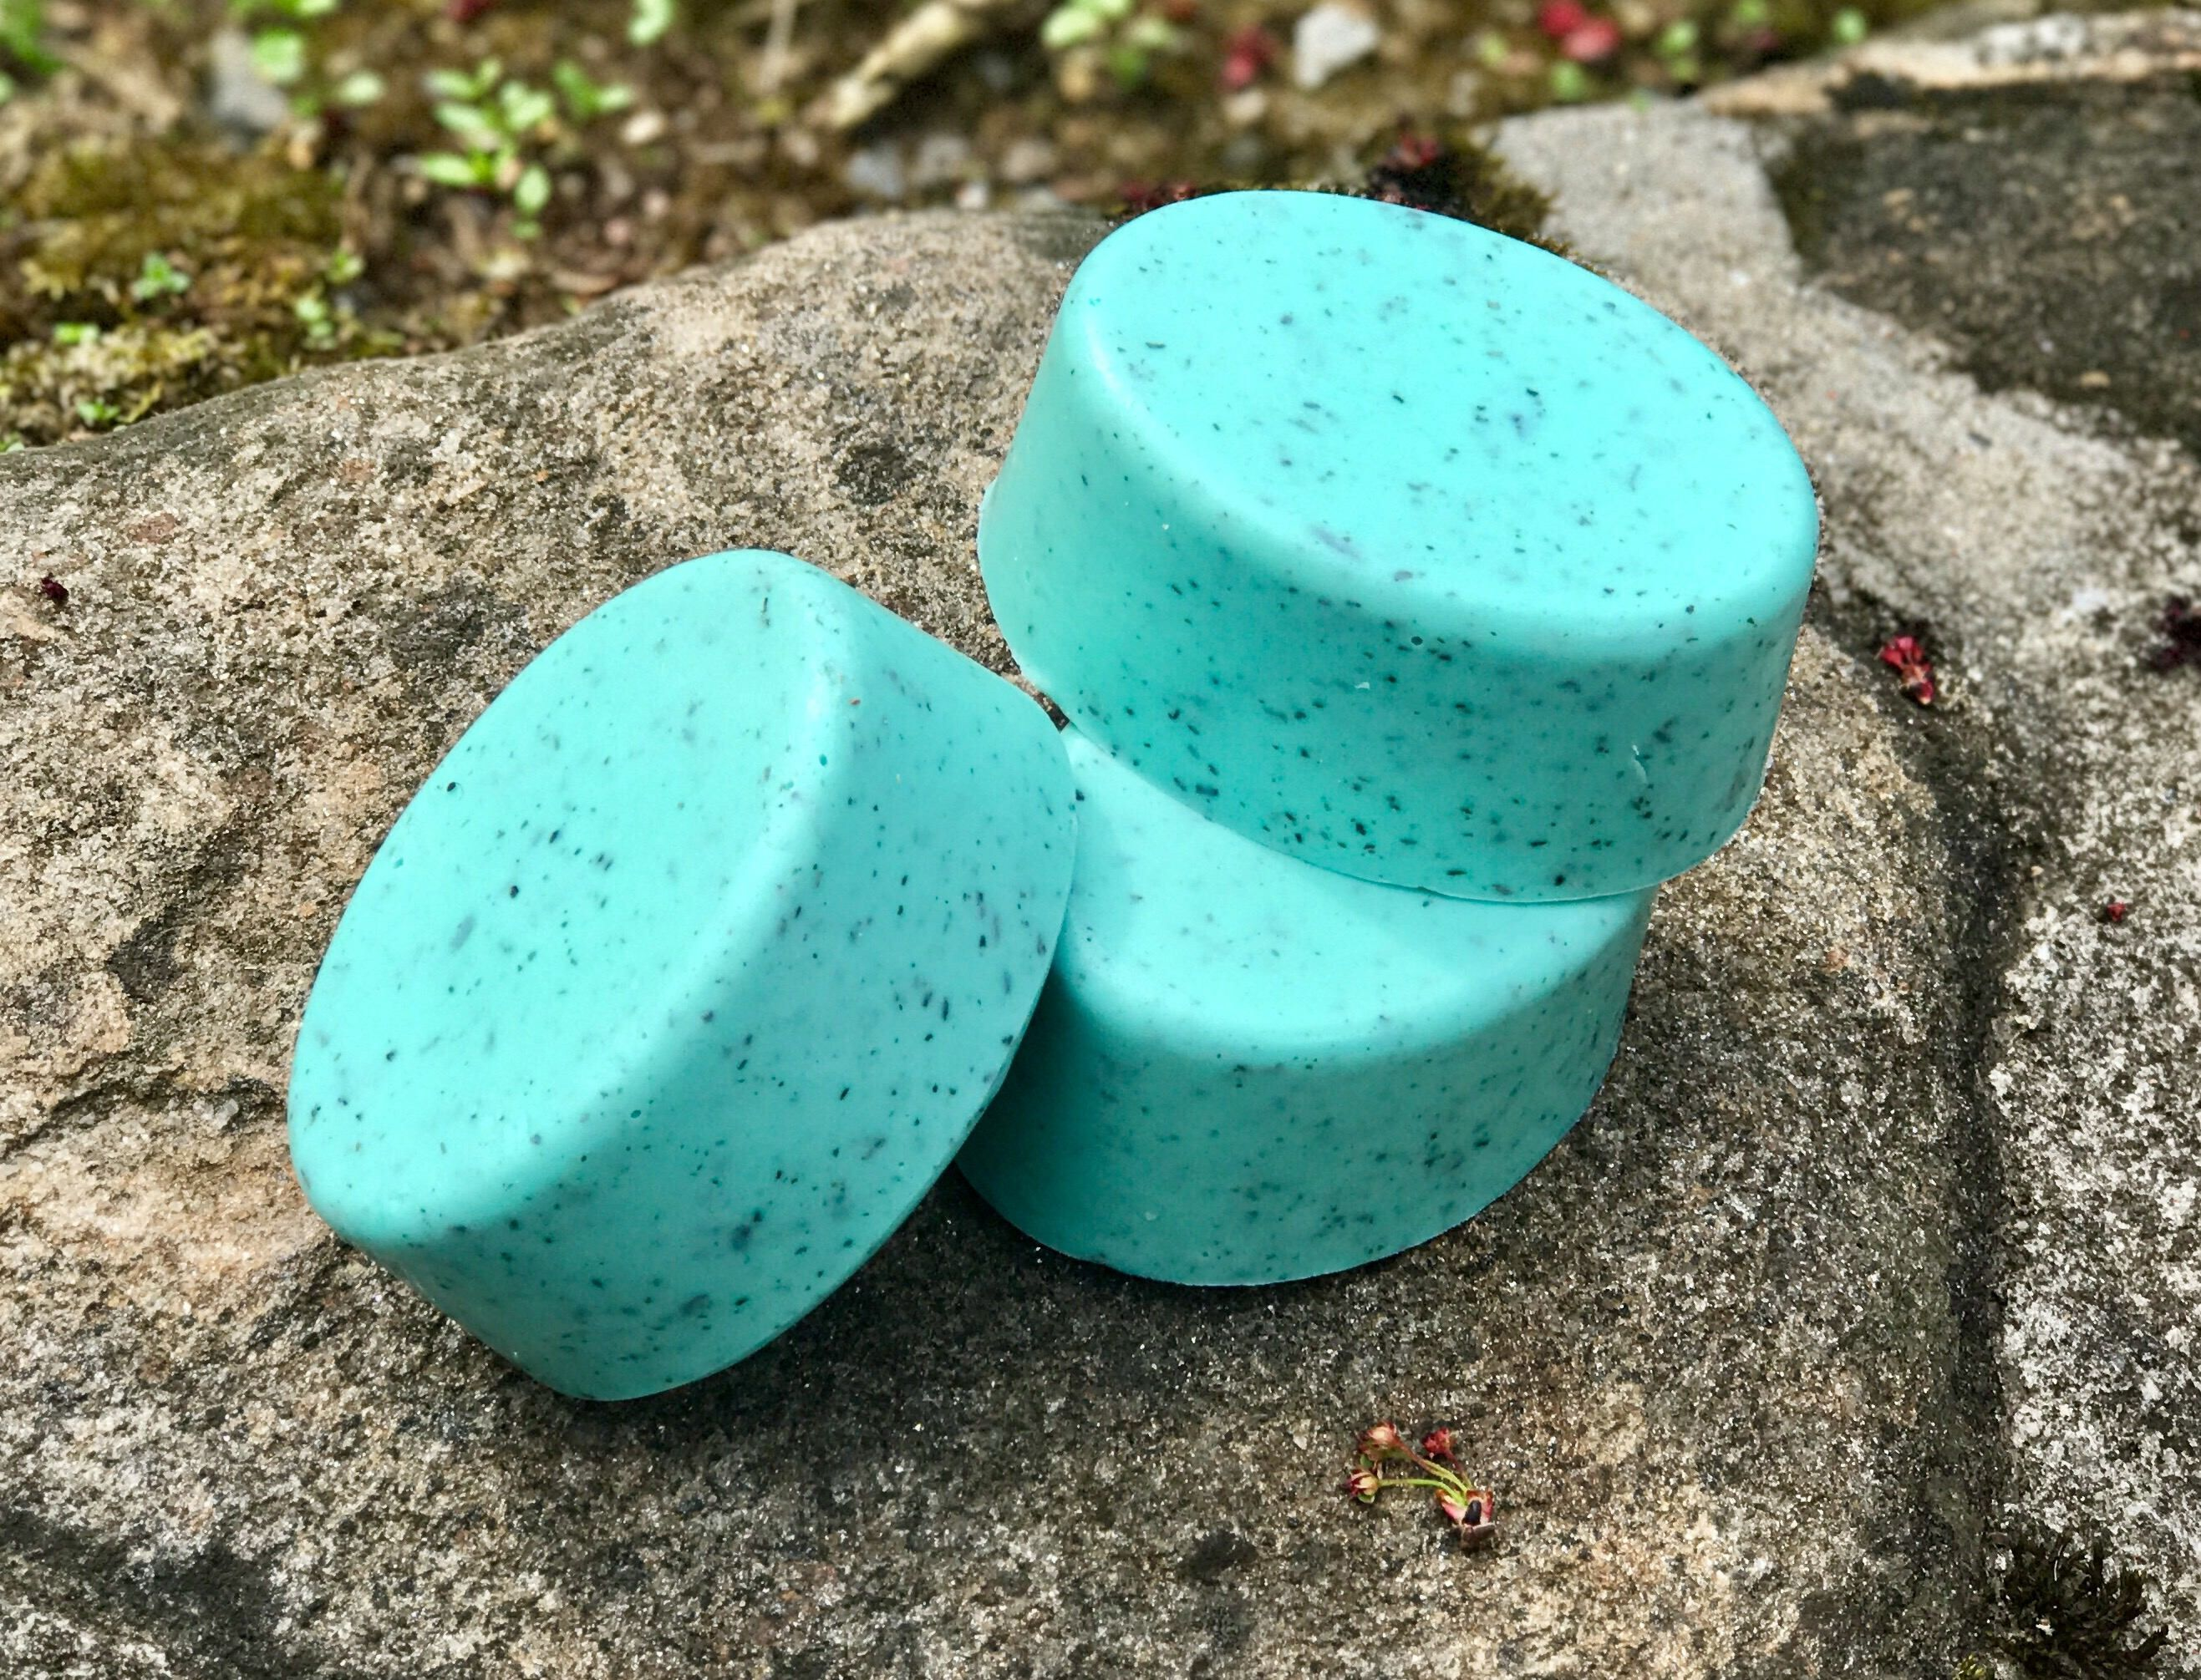 Seaweed Soap Handmade Vegan with Shea Butter by SunnyBungalow on Etsy https://www.etsy.com/listing/525370479/seaweed-soap-handmade-vegan-with-shea